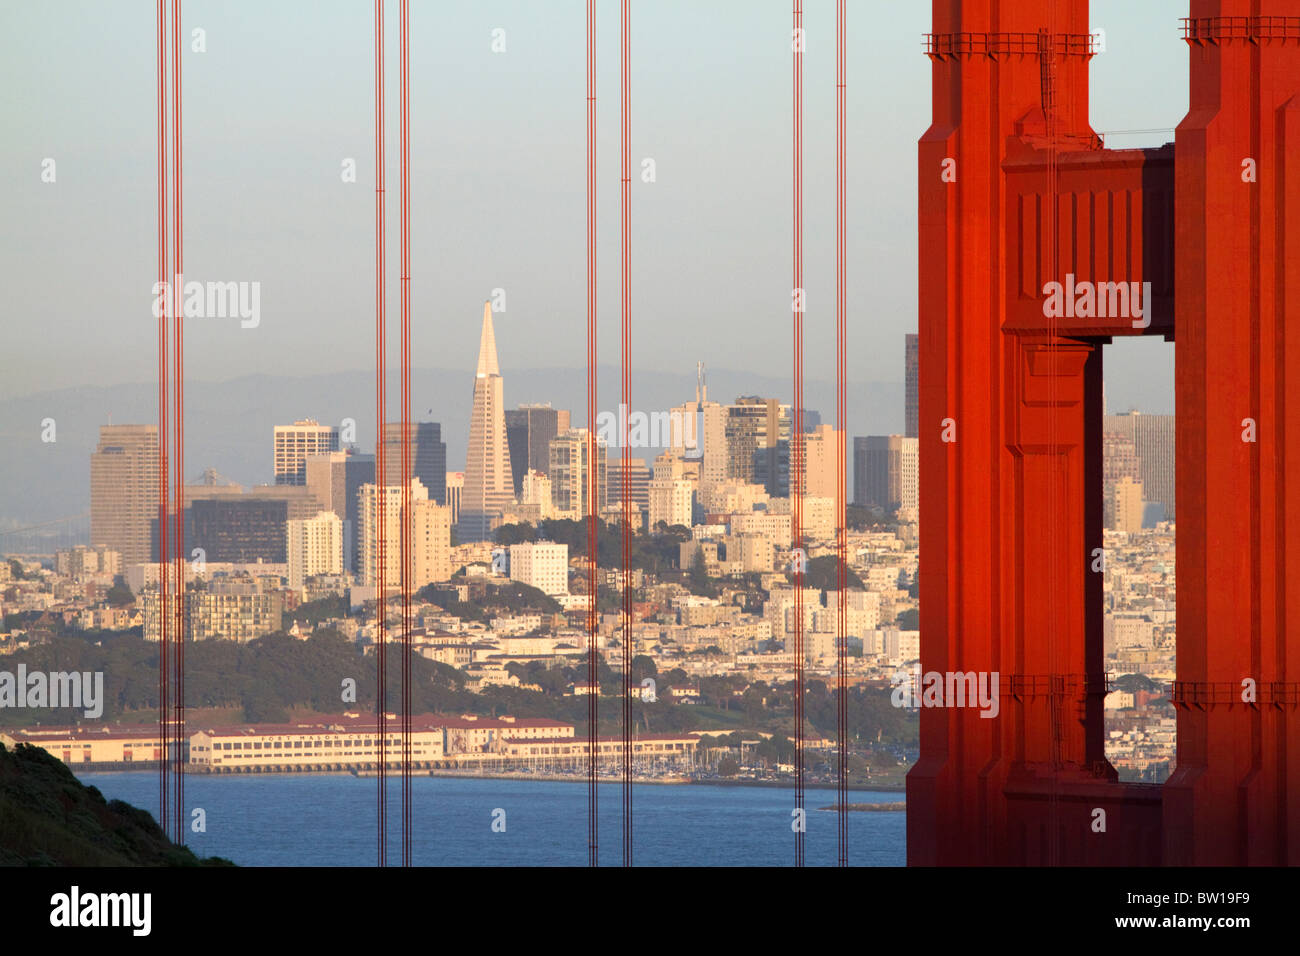 The Golden Gate Bridge and the city of San Francisco, California, USA. - Stock Image